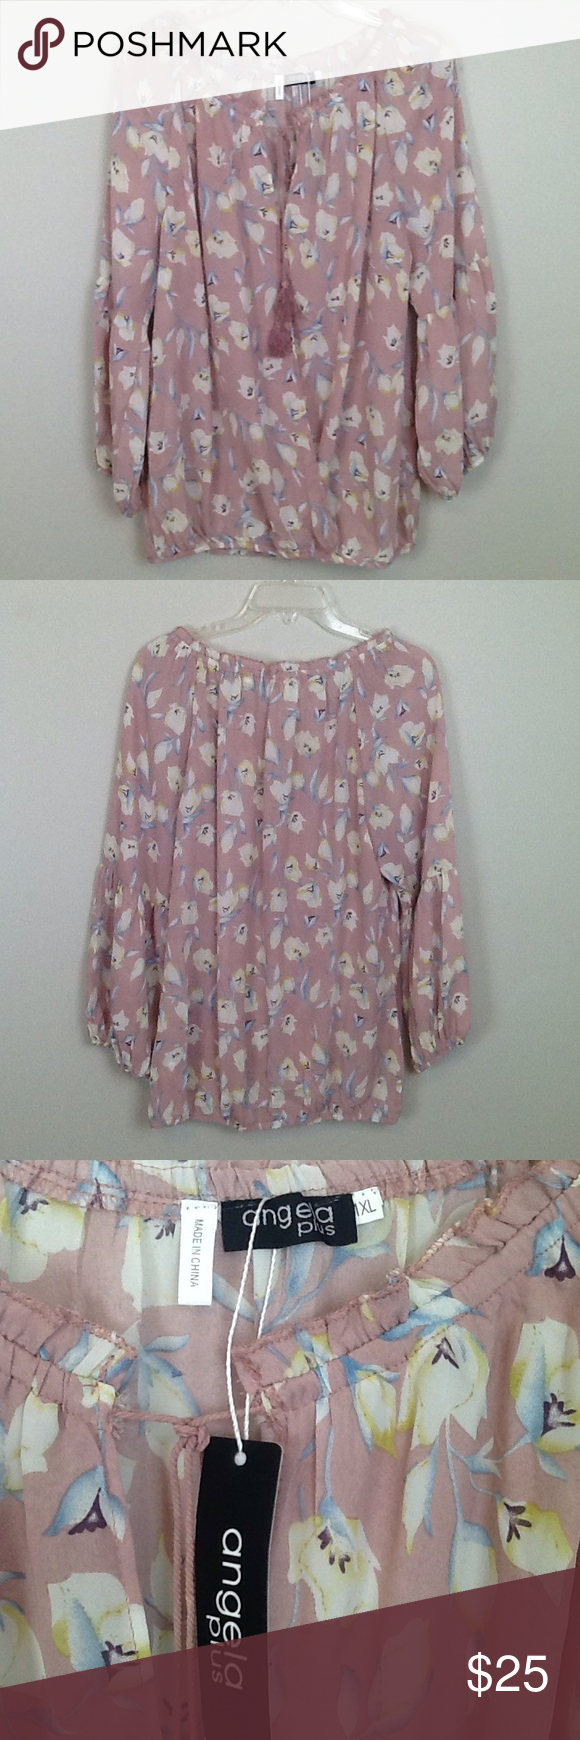 Pastel Floral Blouse with Angel Sleeves